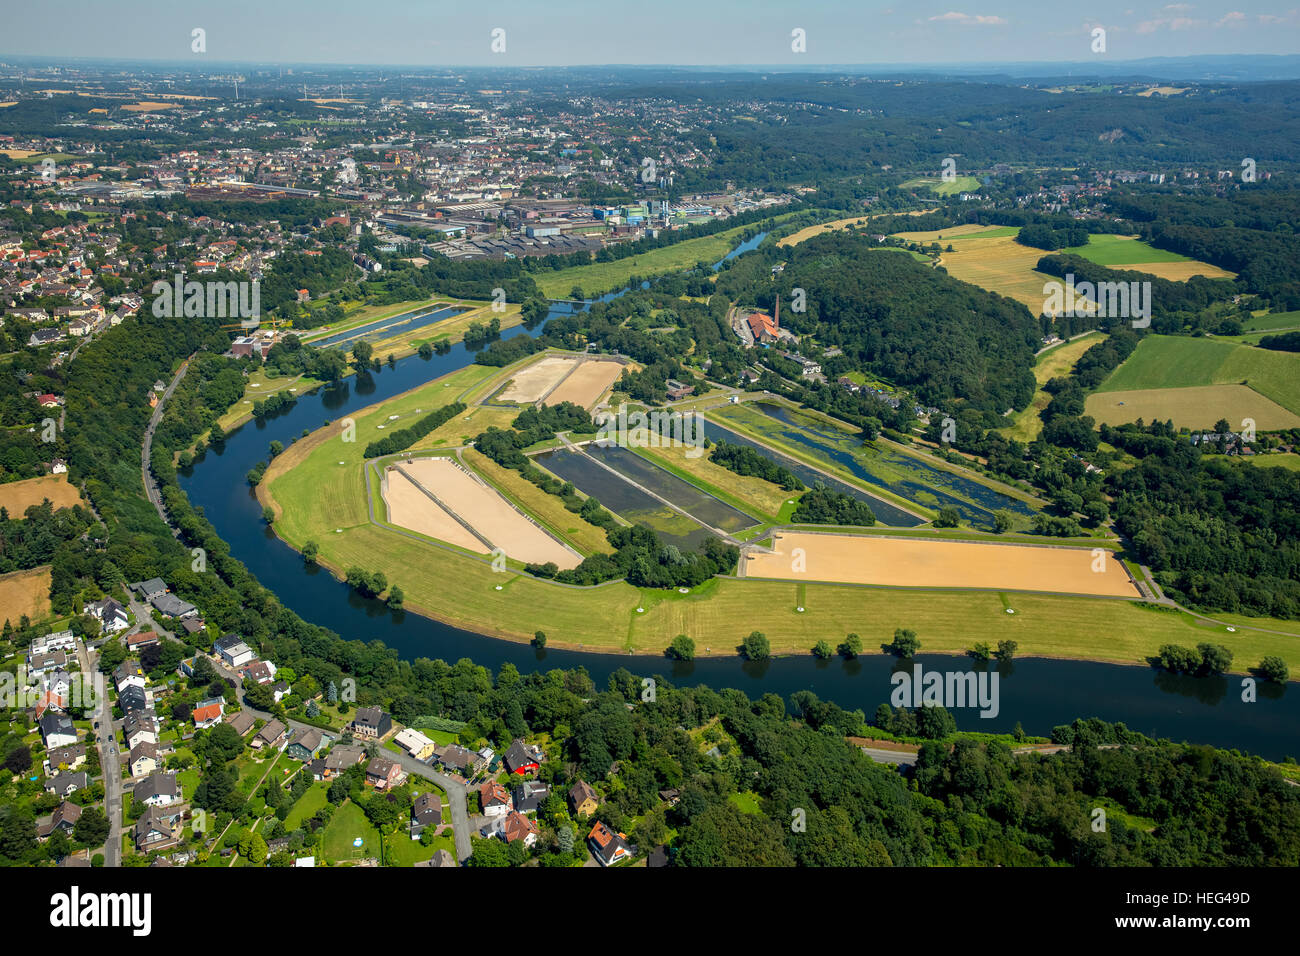 Aerial view, water purification plants, Ruhr Valley, Witten, North Rhine-Westphalia, Germany - Stock Image